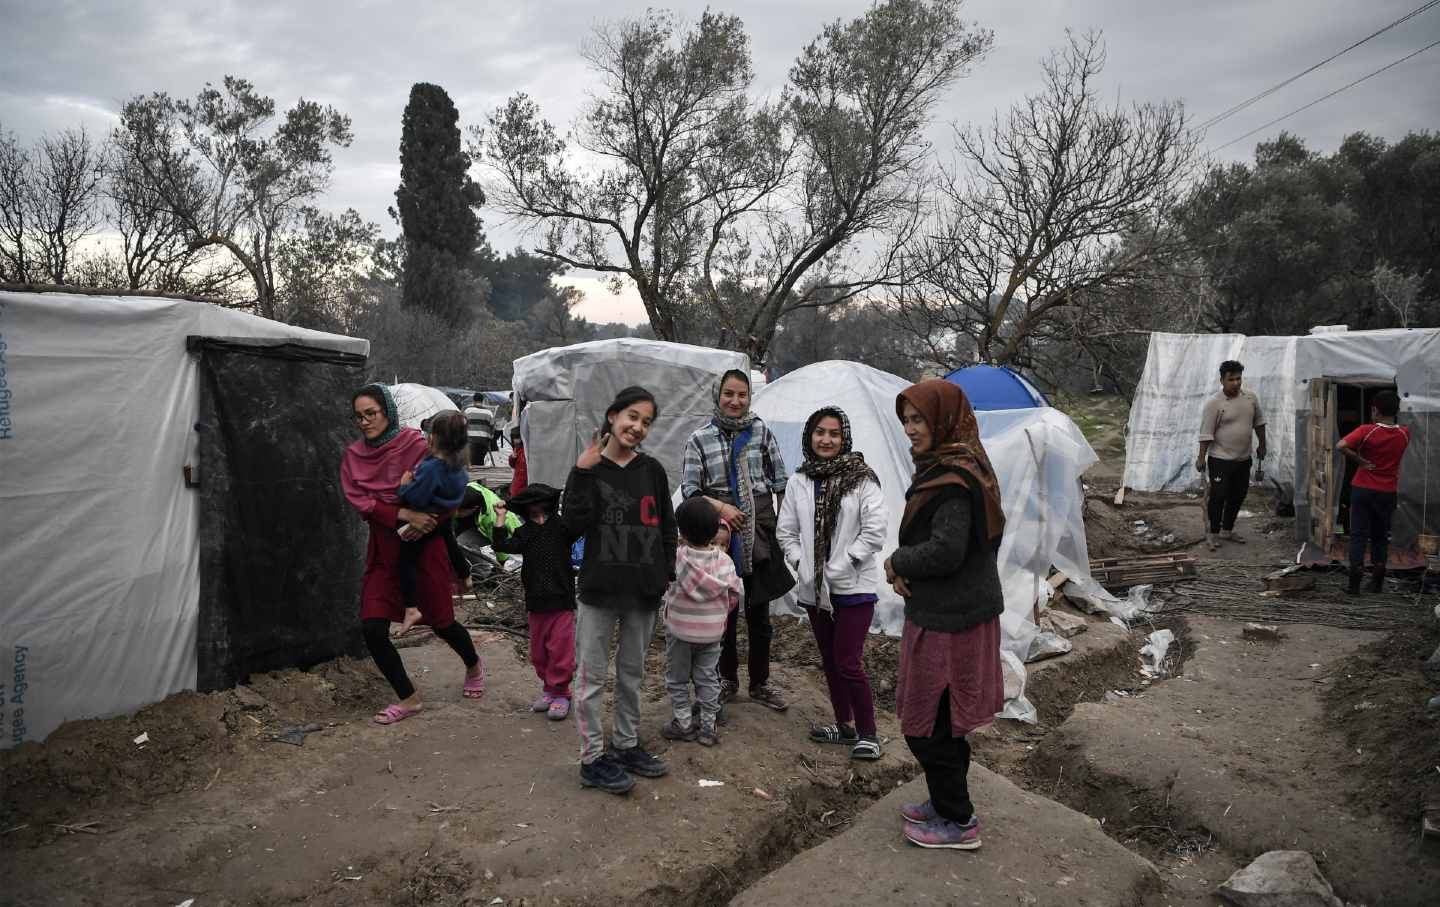 chios-vial-refugee-camp-gty-img